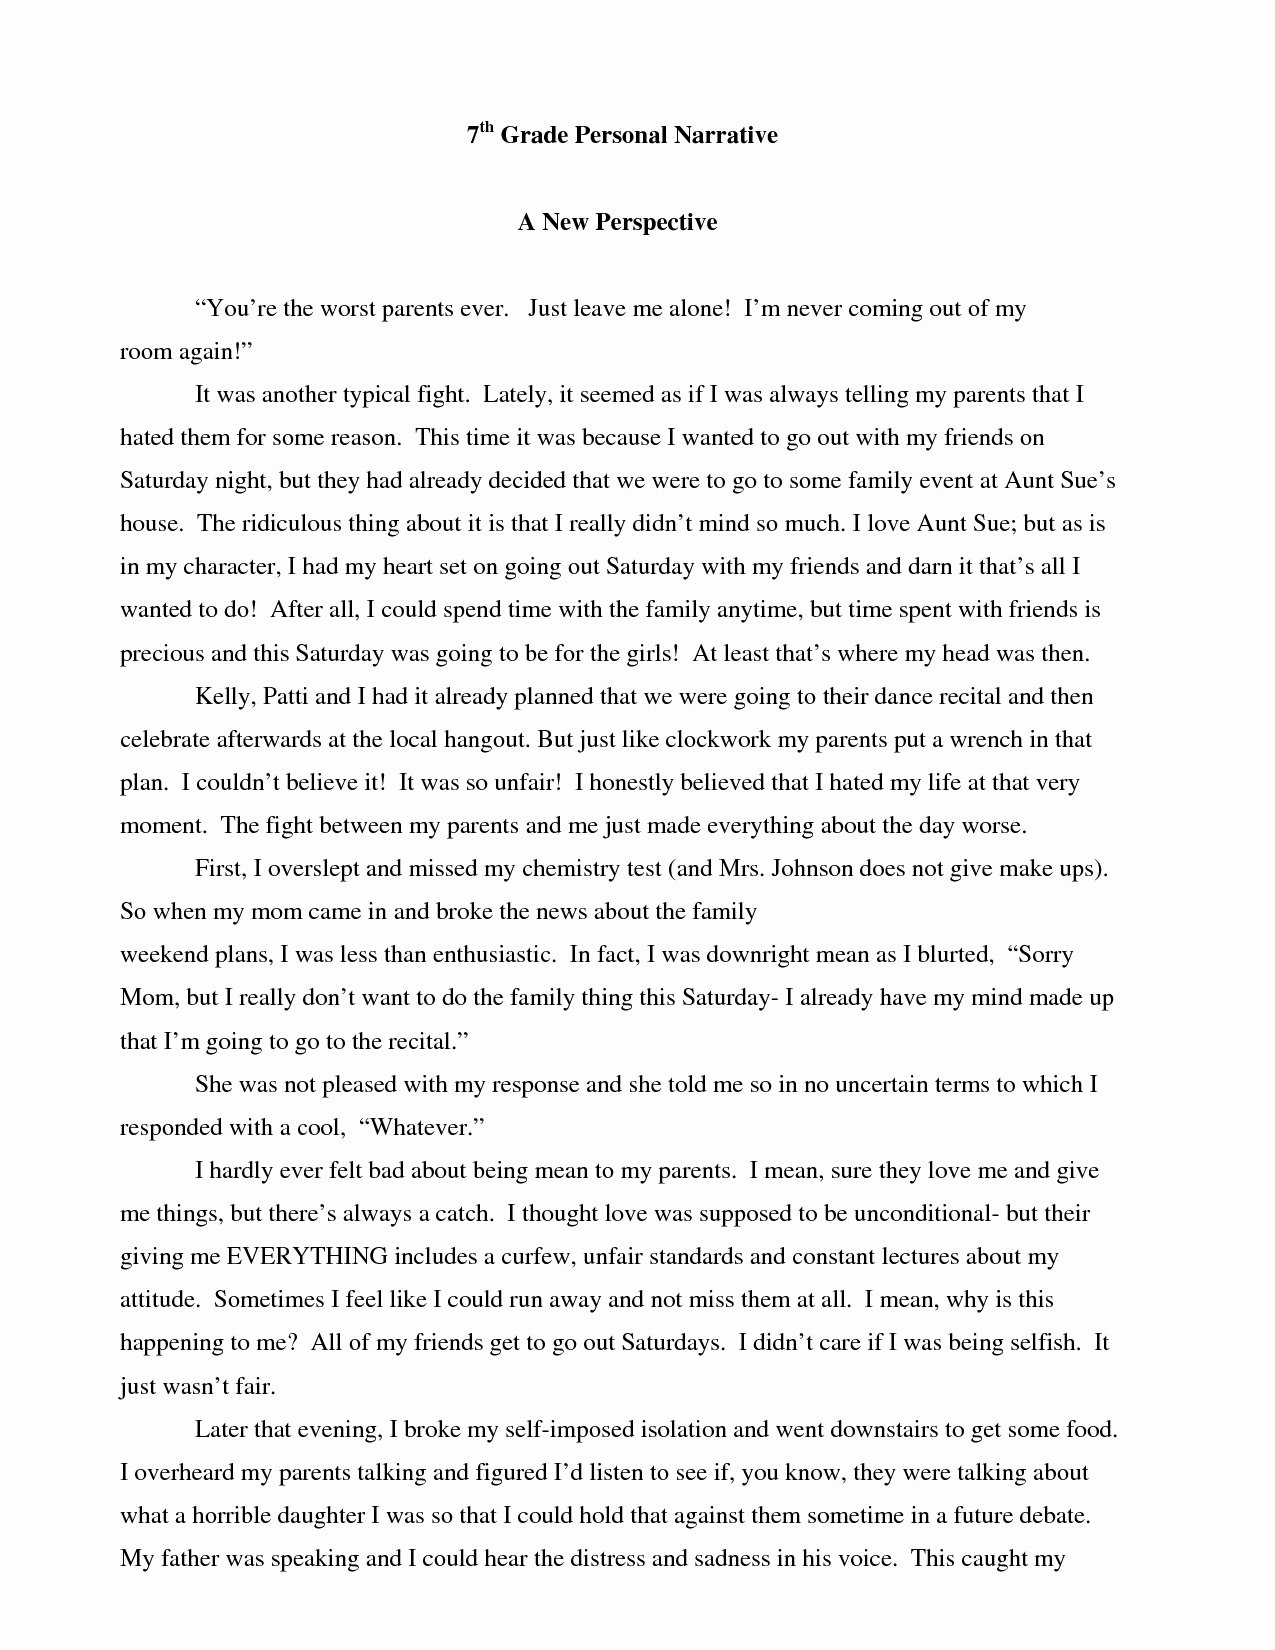 Personal Narrative High School Examples Luxury Narrative Essay Examples with Dialogue